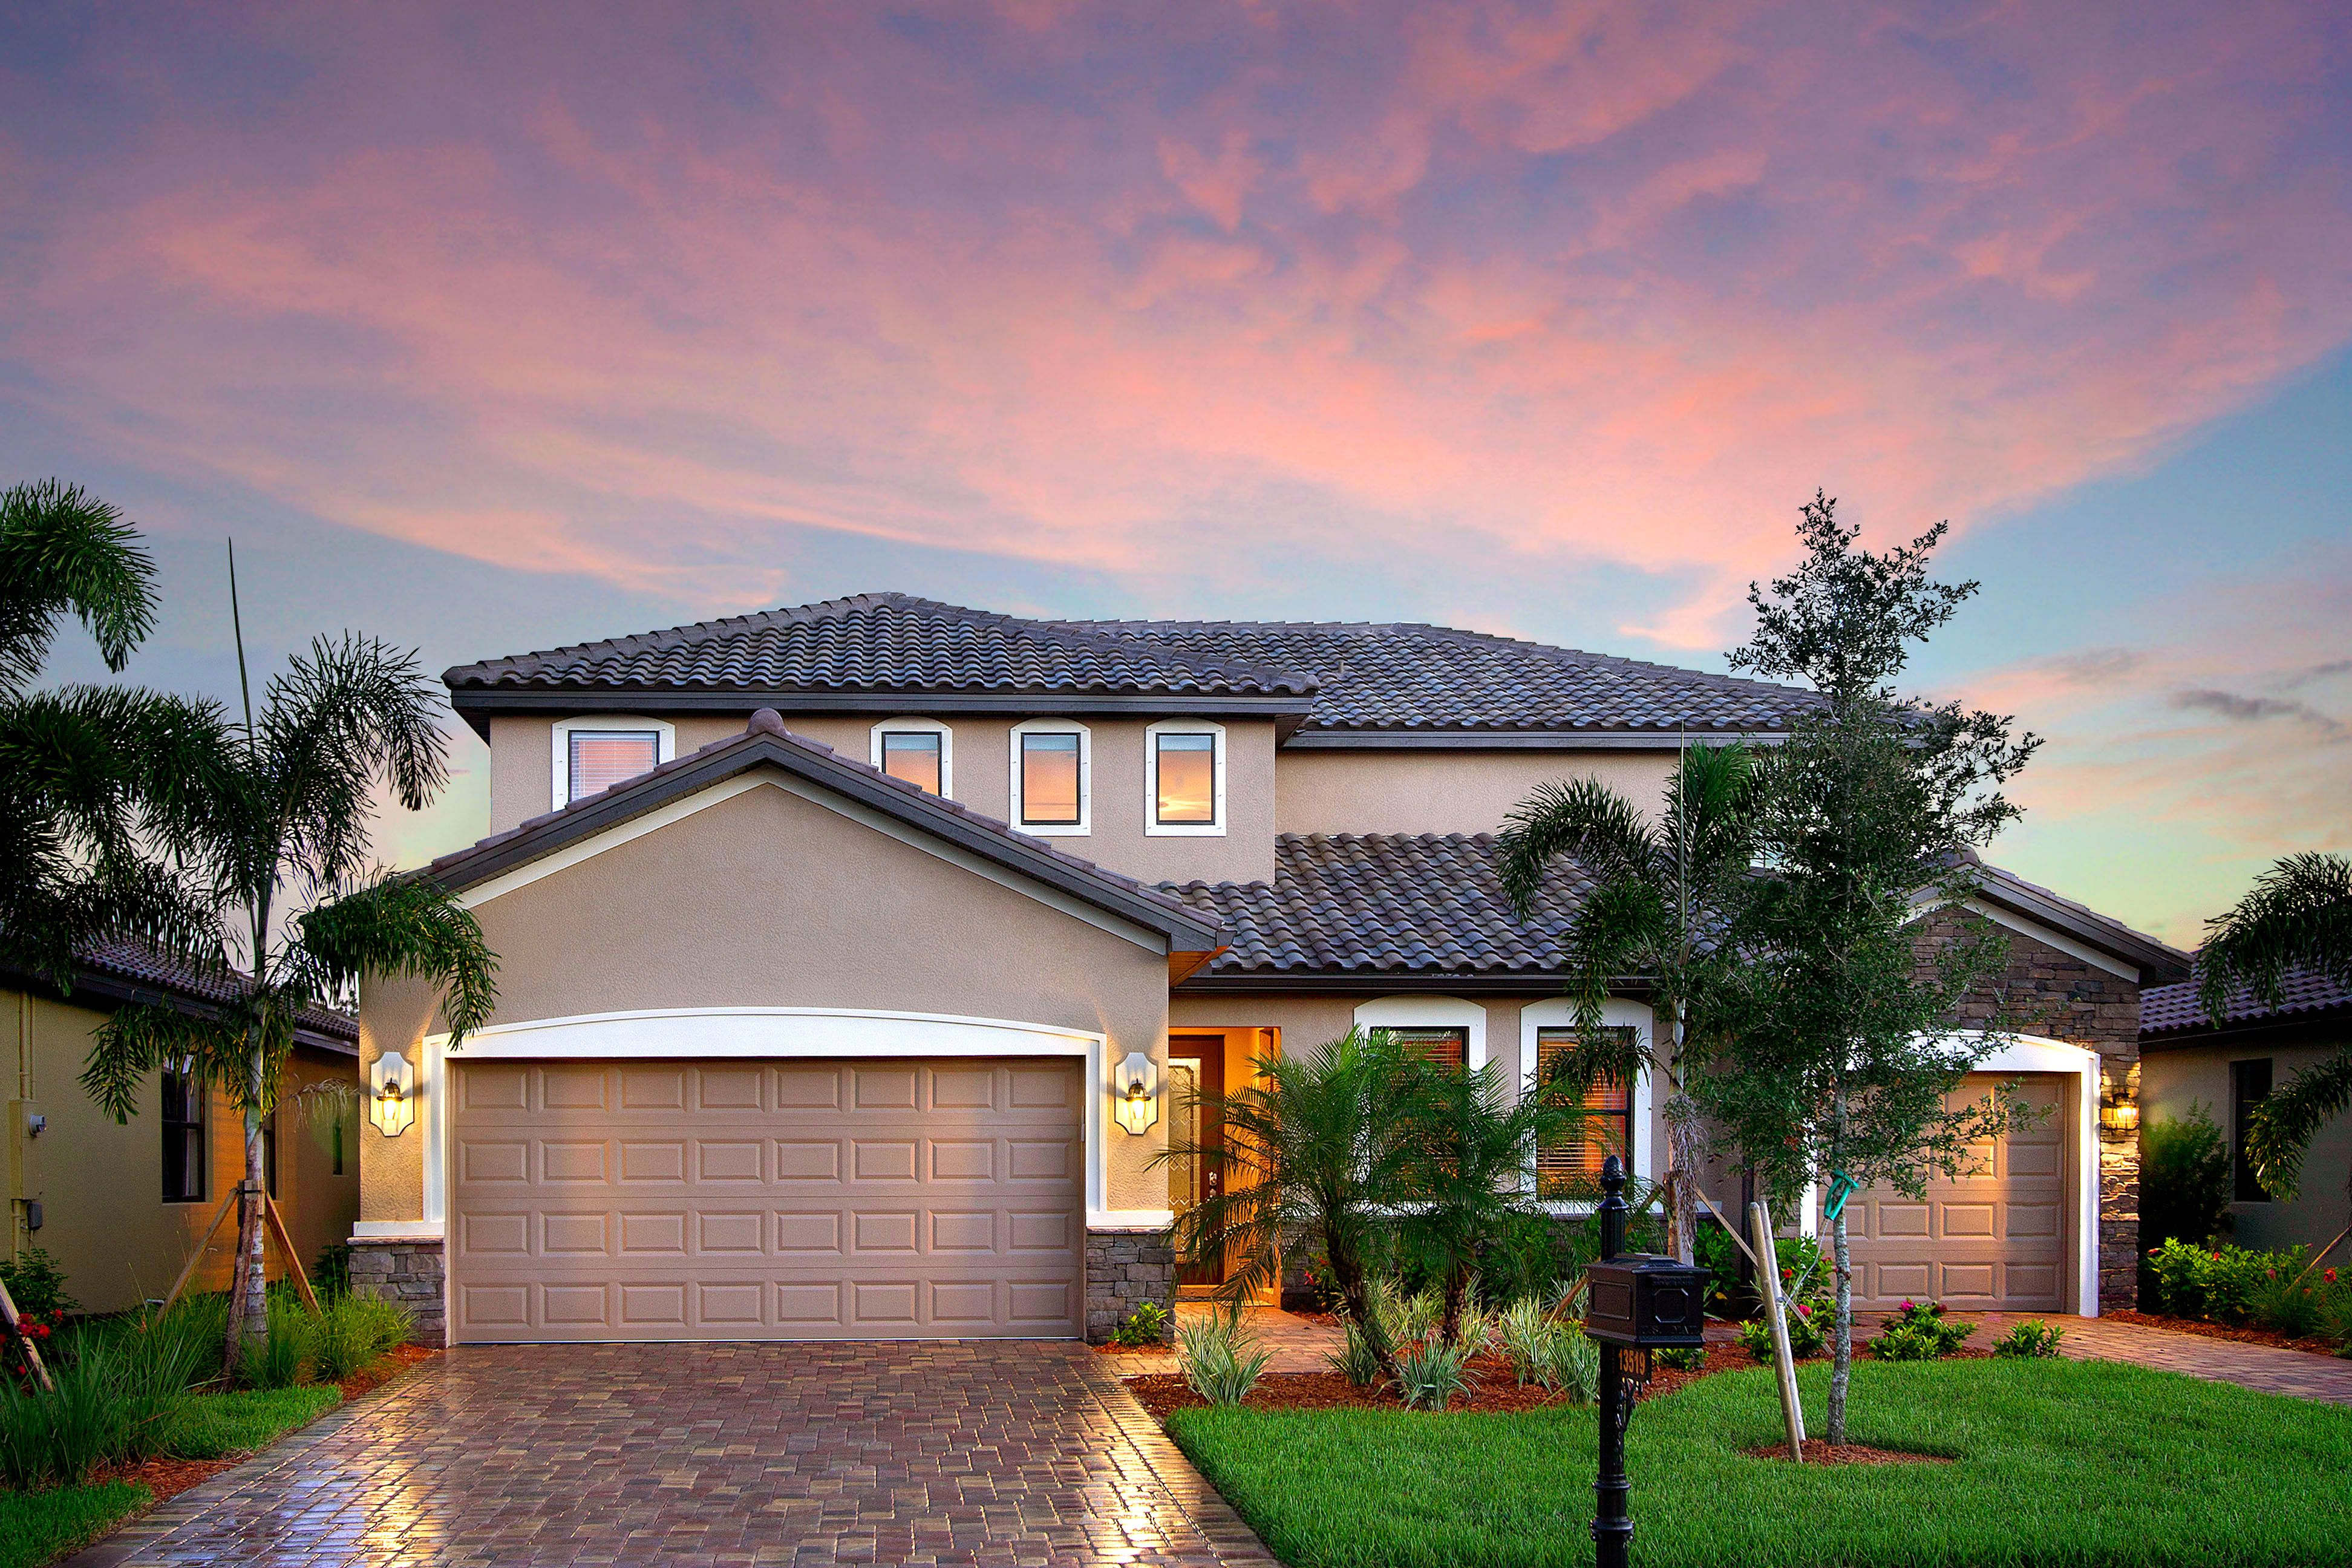 What S Your Initial Impression Of The Home Within A Home New Home Communities Estate Homes Home